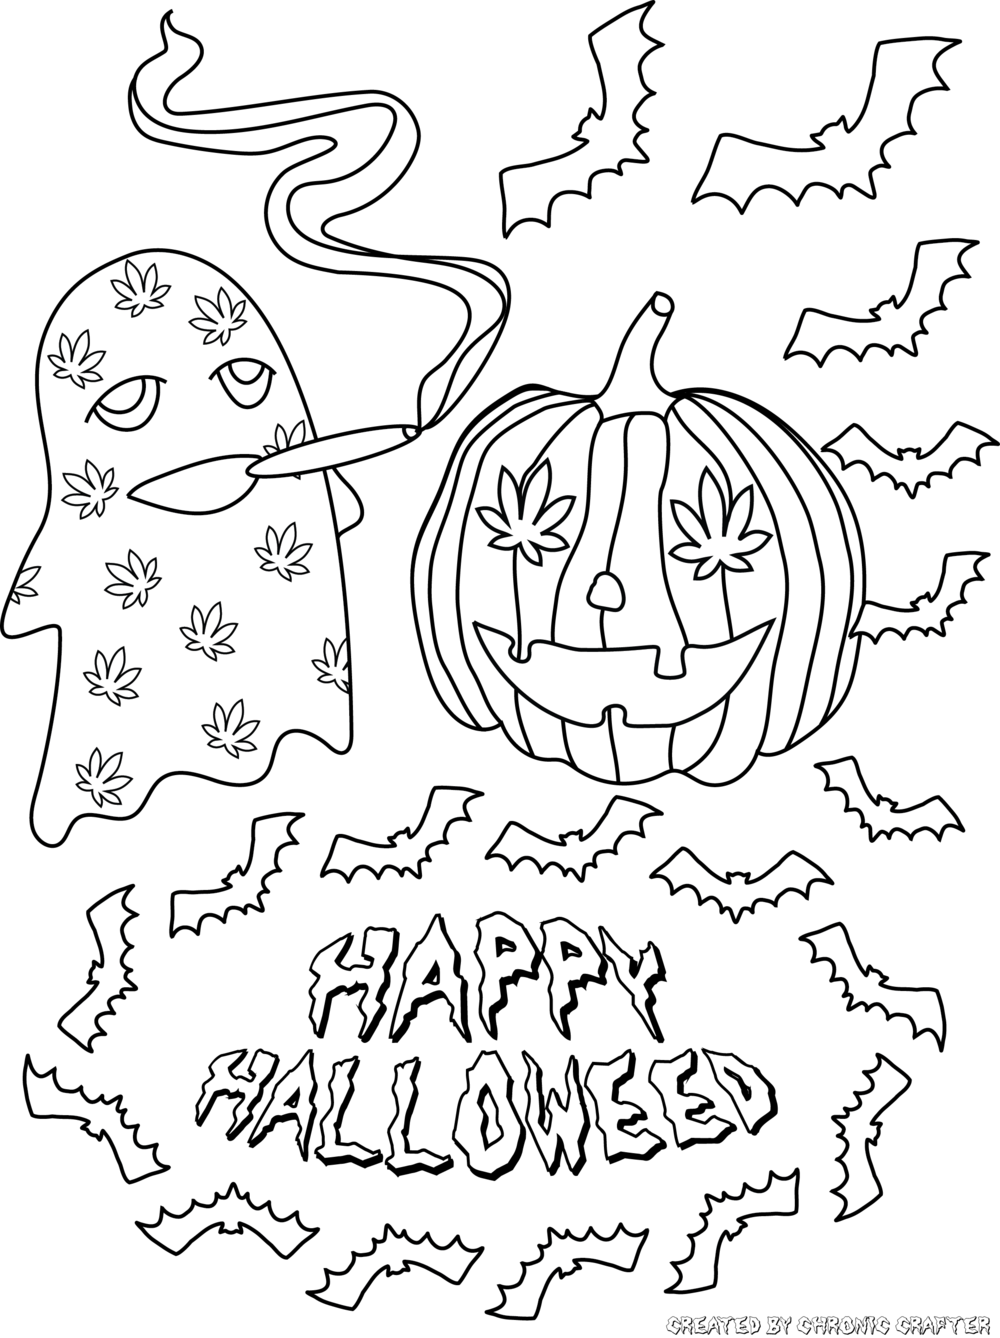 Chronic Crafter Halloweed Coloring Contest for Stoners